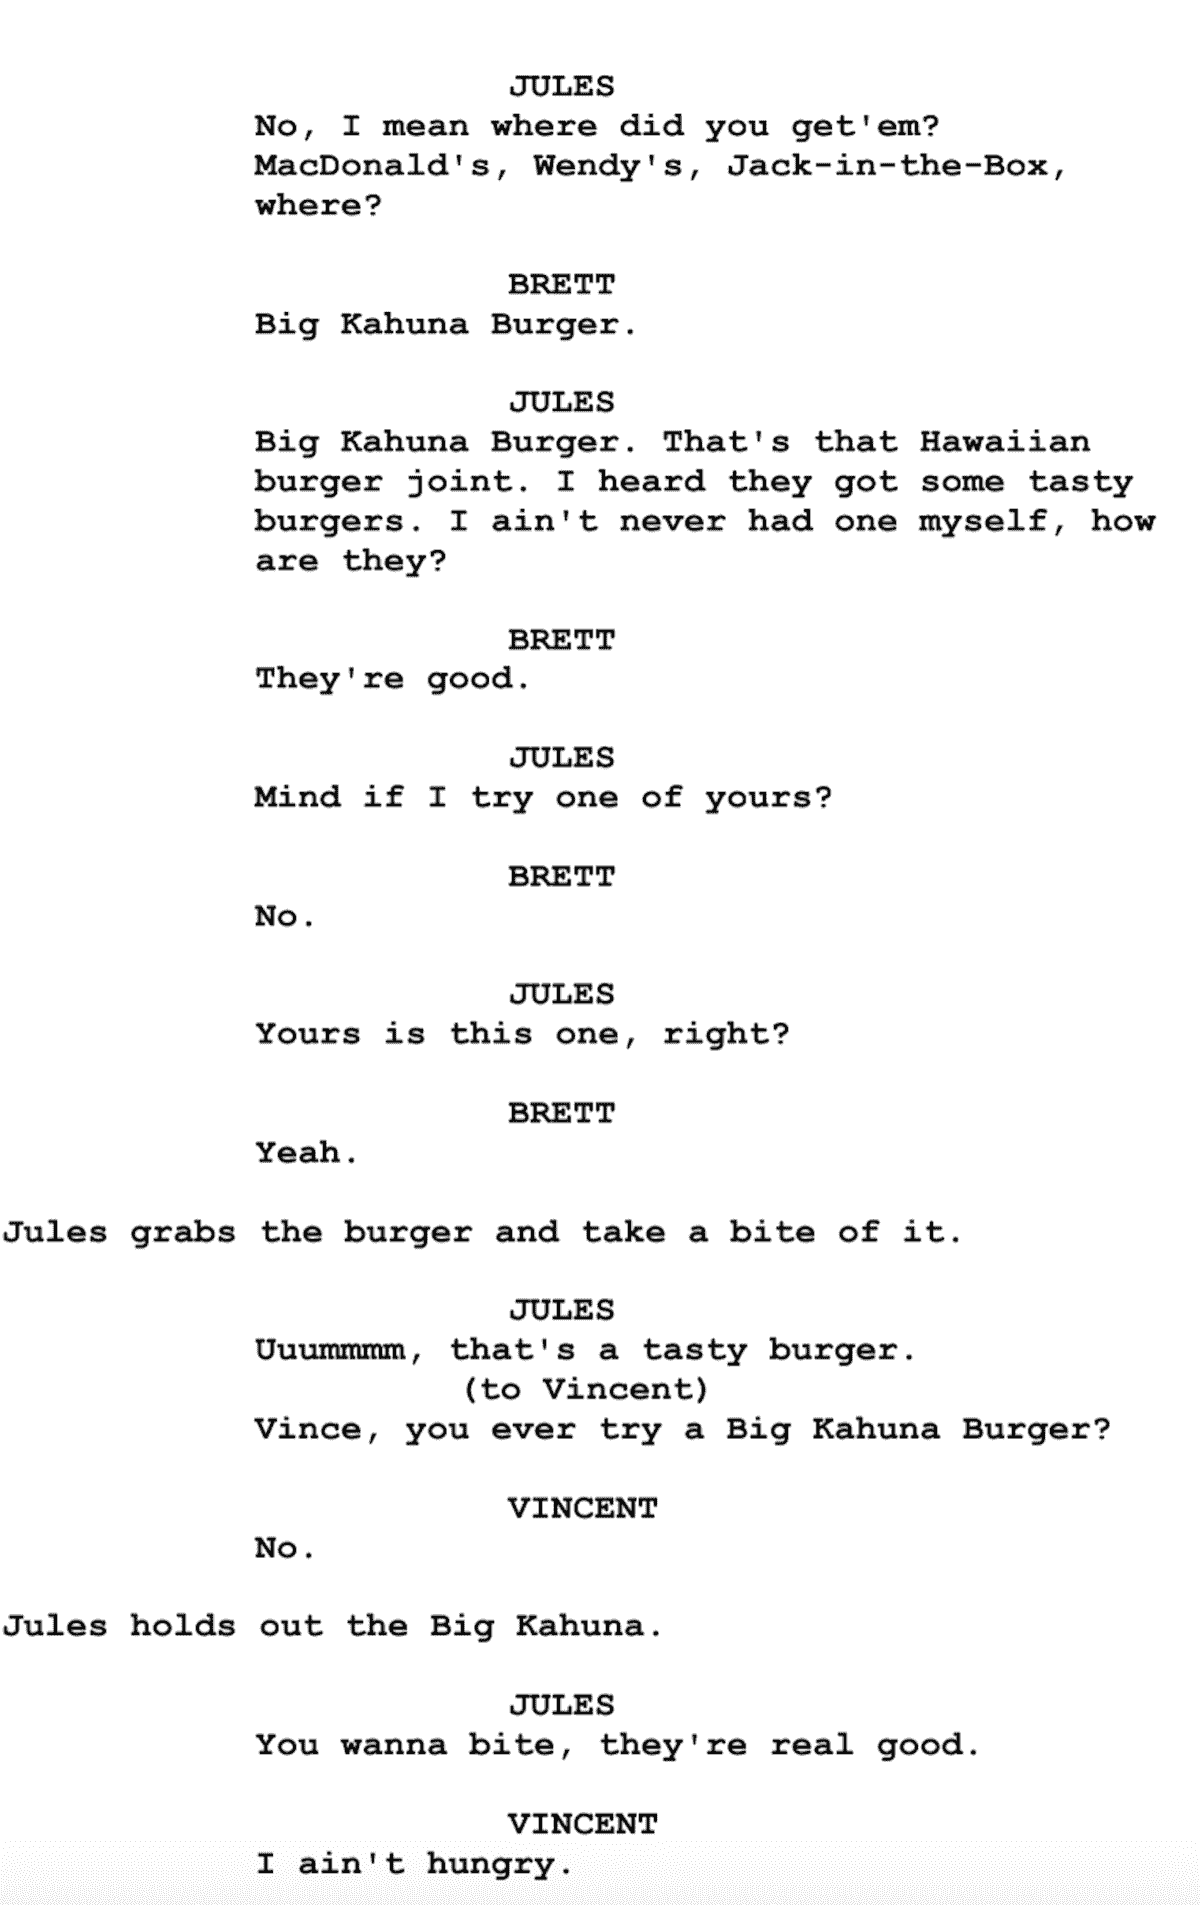 Screenplay Examples - Pulp Fiction Script - Screenplay Snippet 13 - Big Kahuna Burger